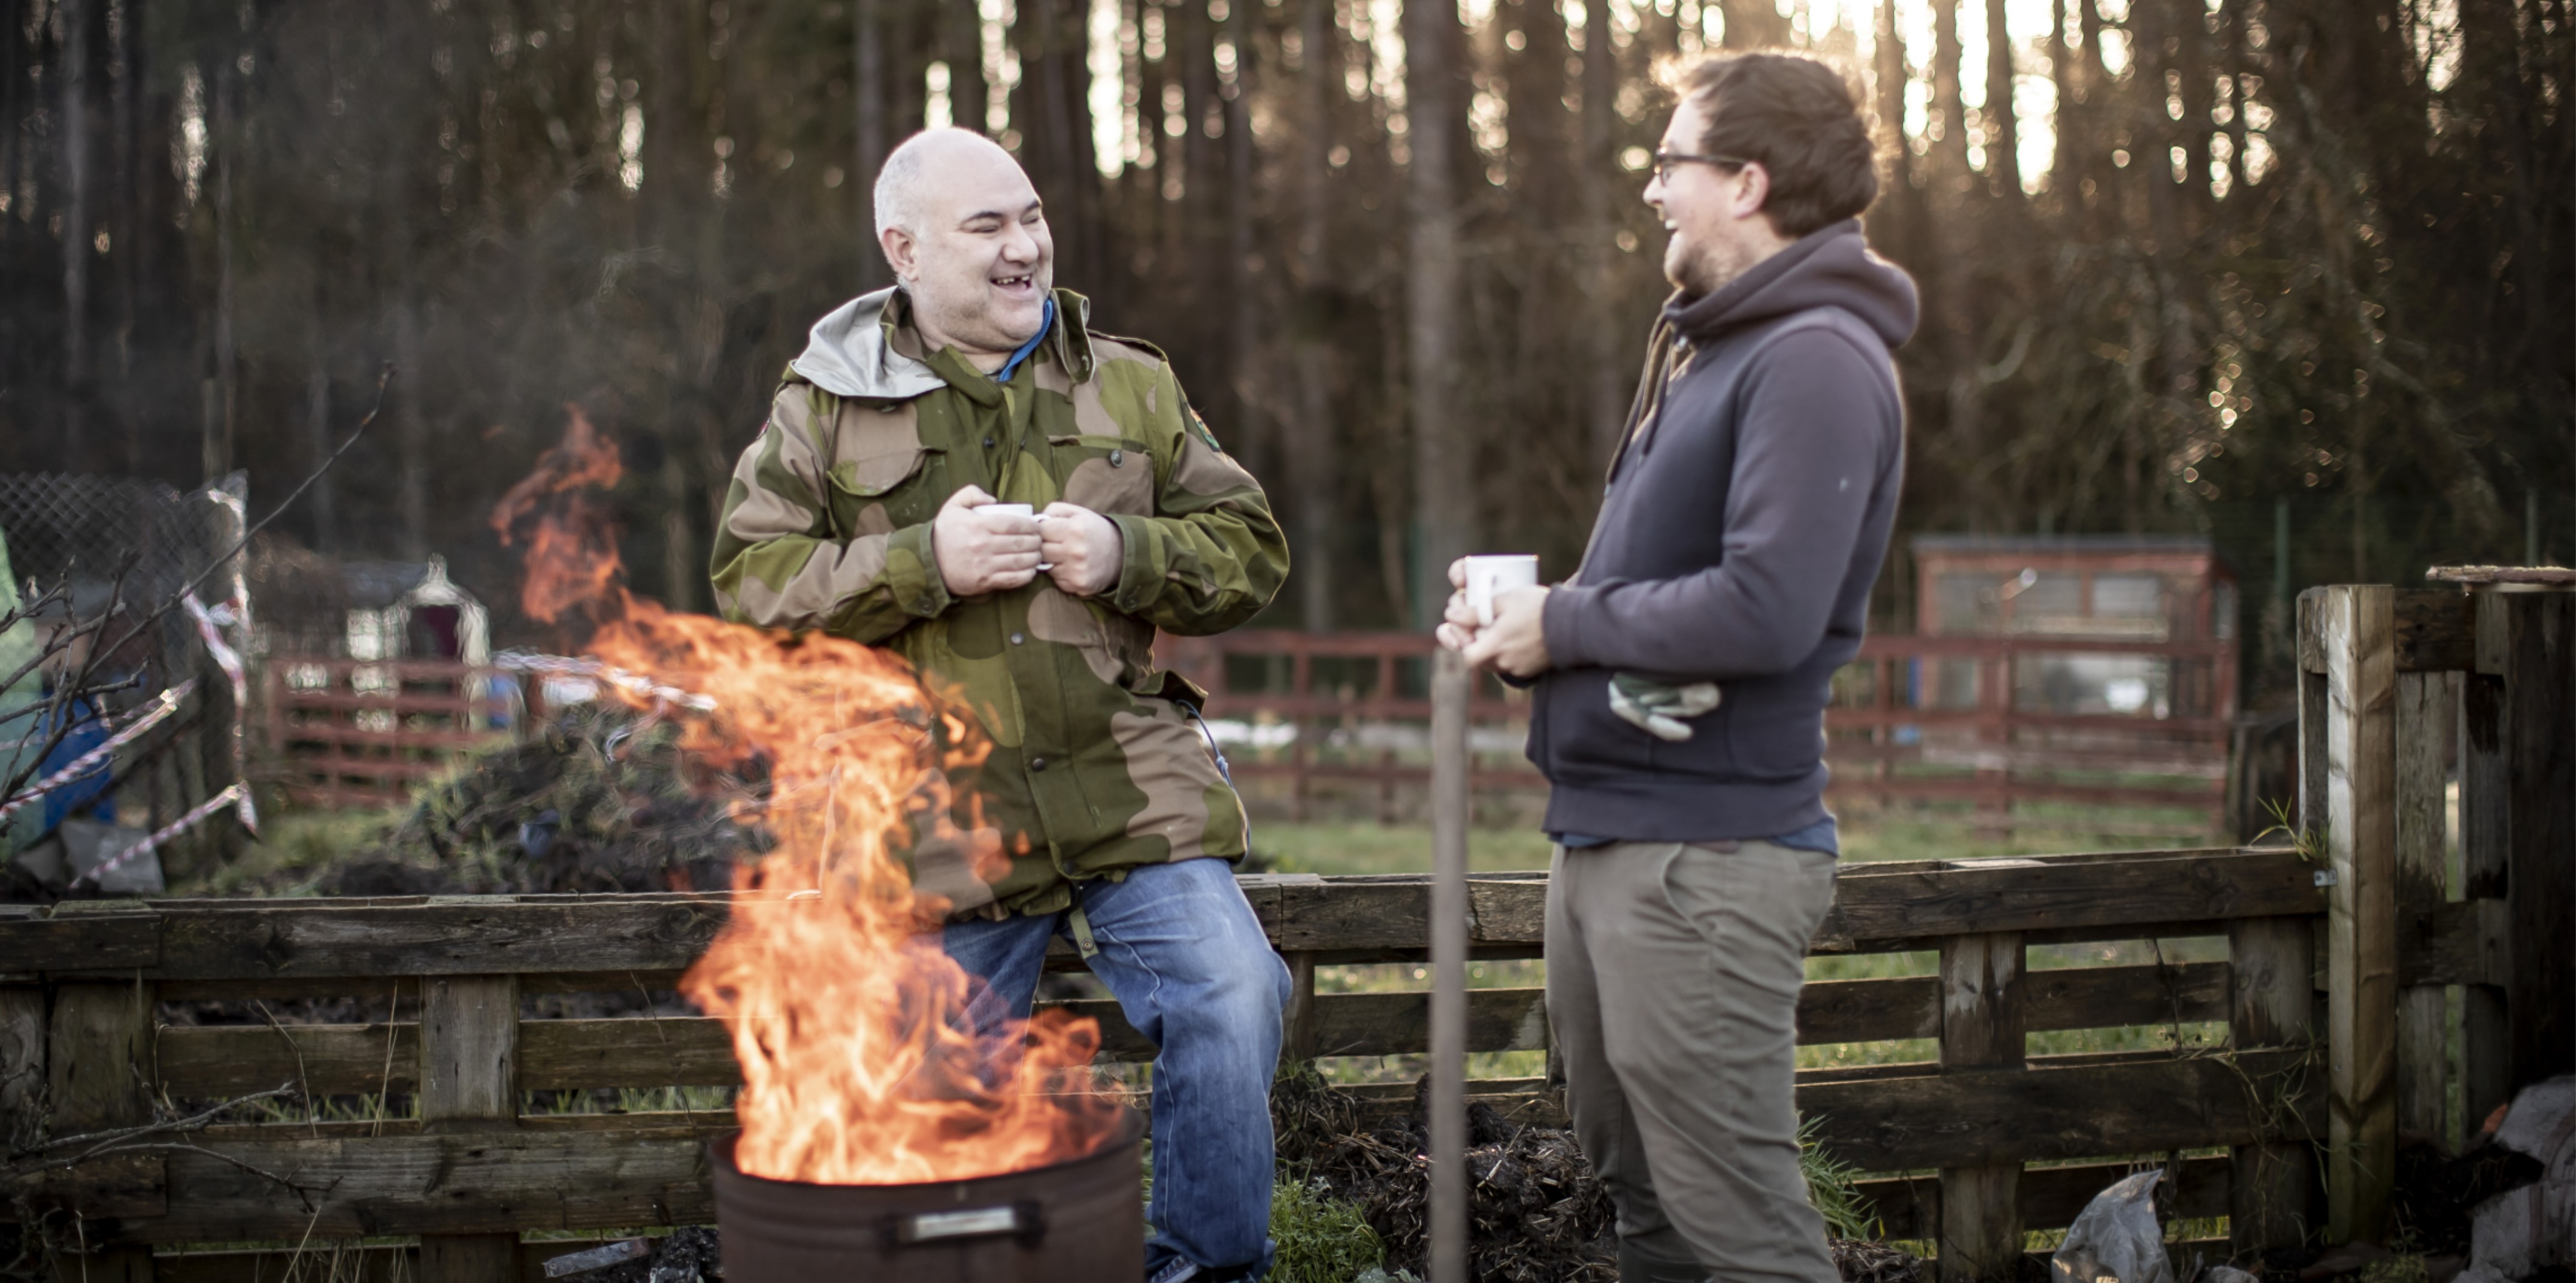 Two men laughing with each other by a fire